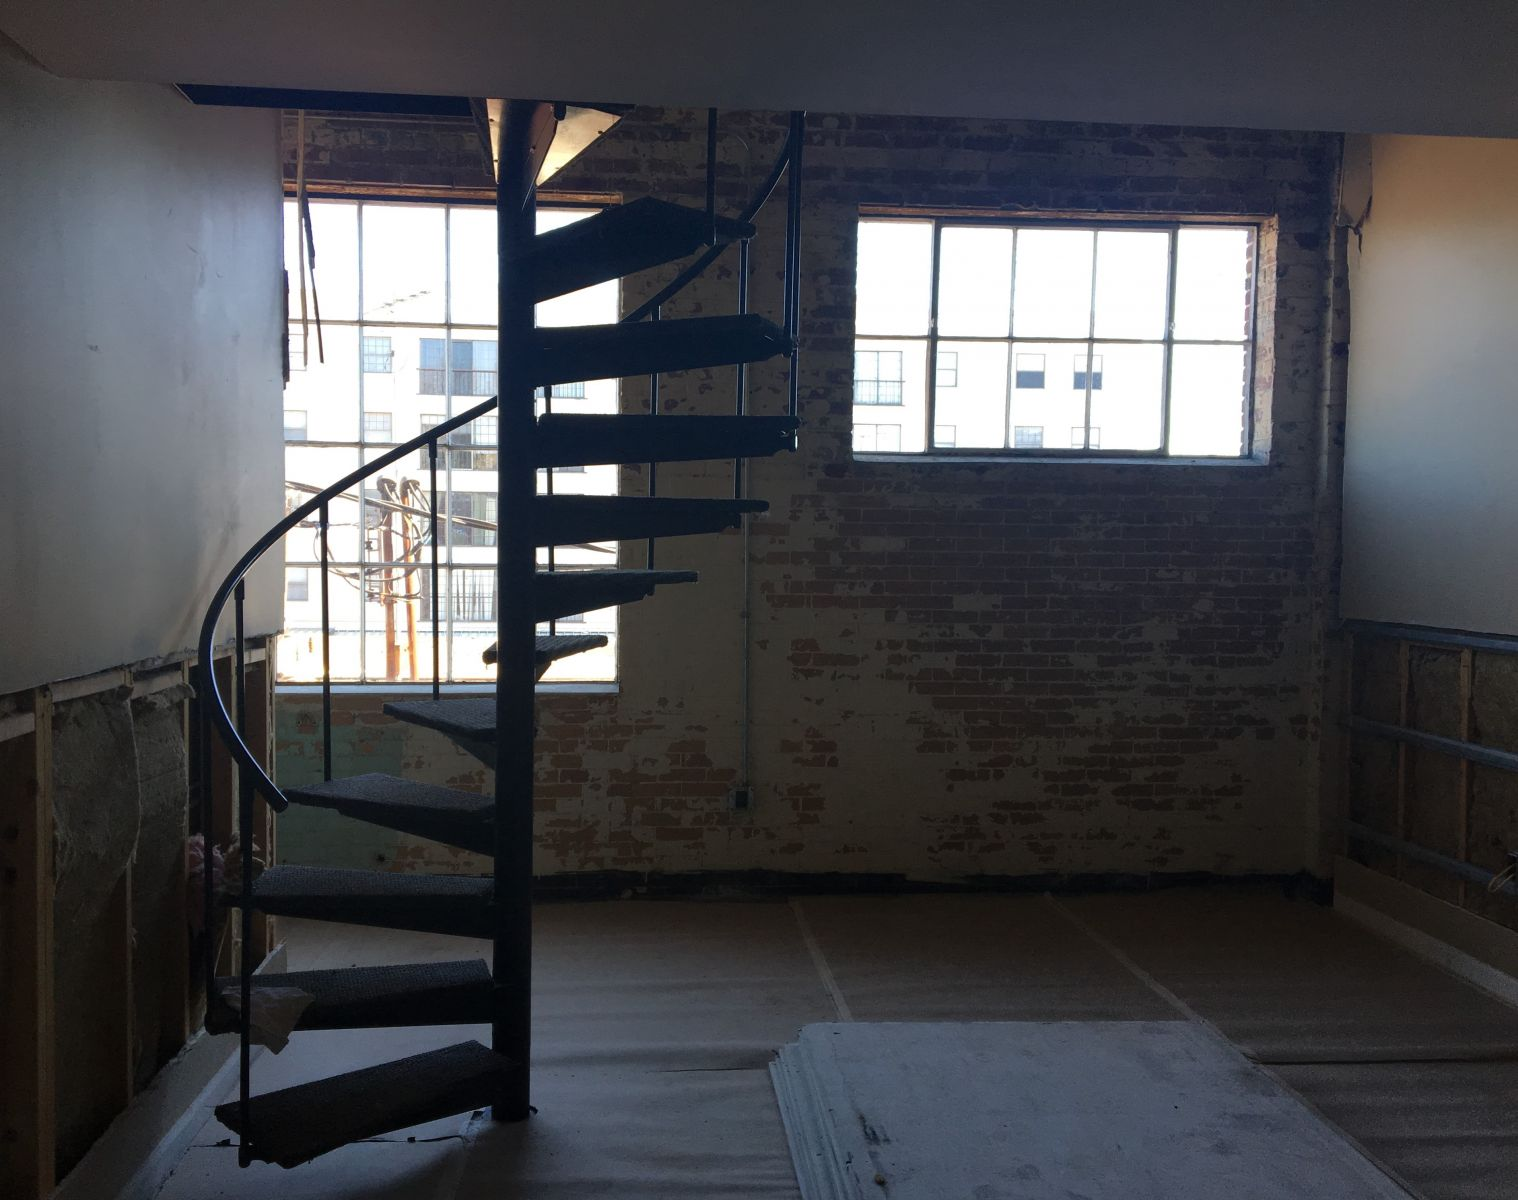 Eight upstairs lofts feature spiral staircases leading to a bedroom. All units are being outfitted with kitchenettes. (Photo/Melinda Waldrop)